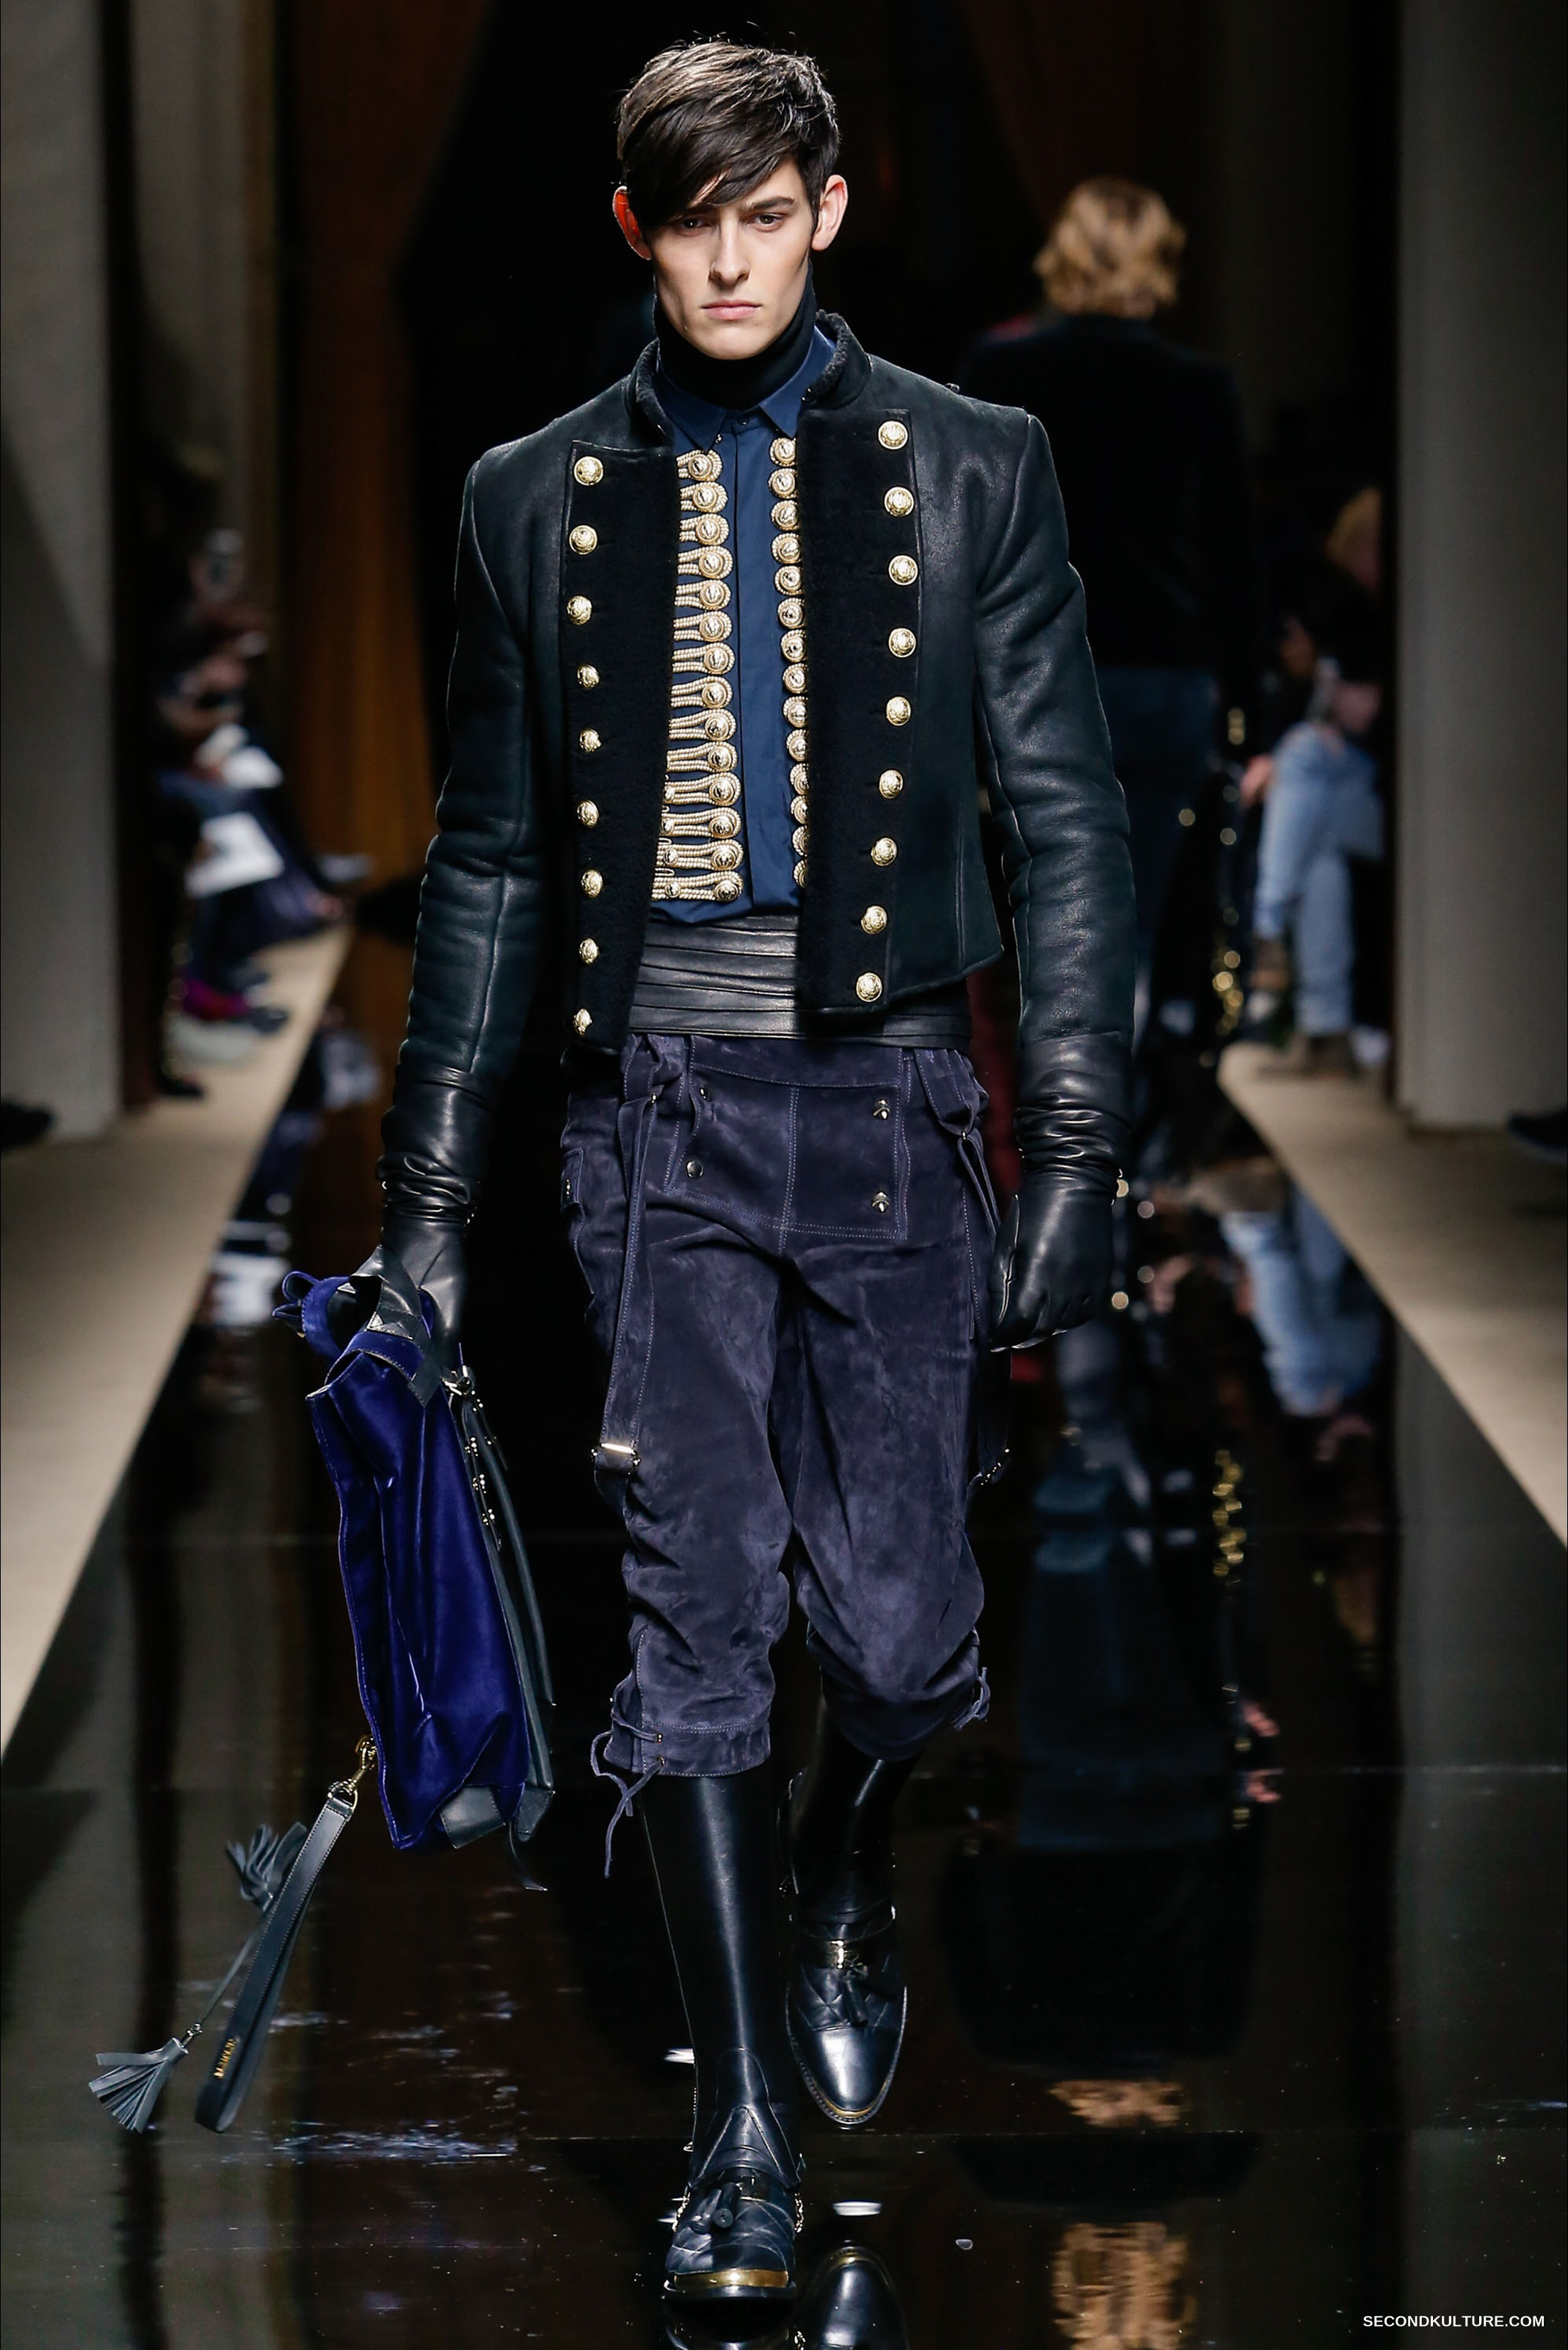 Balmain Fall Winter 2016 Menswear - Look 8/63